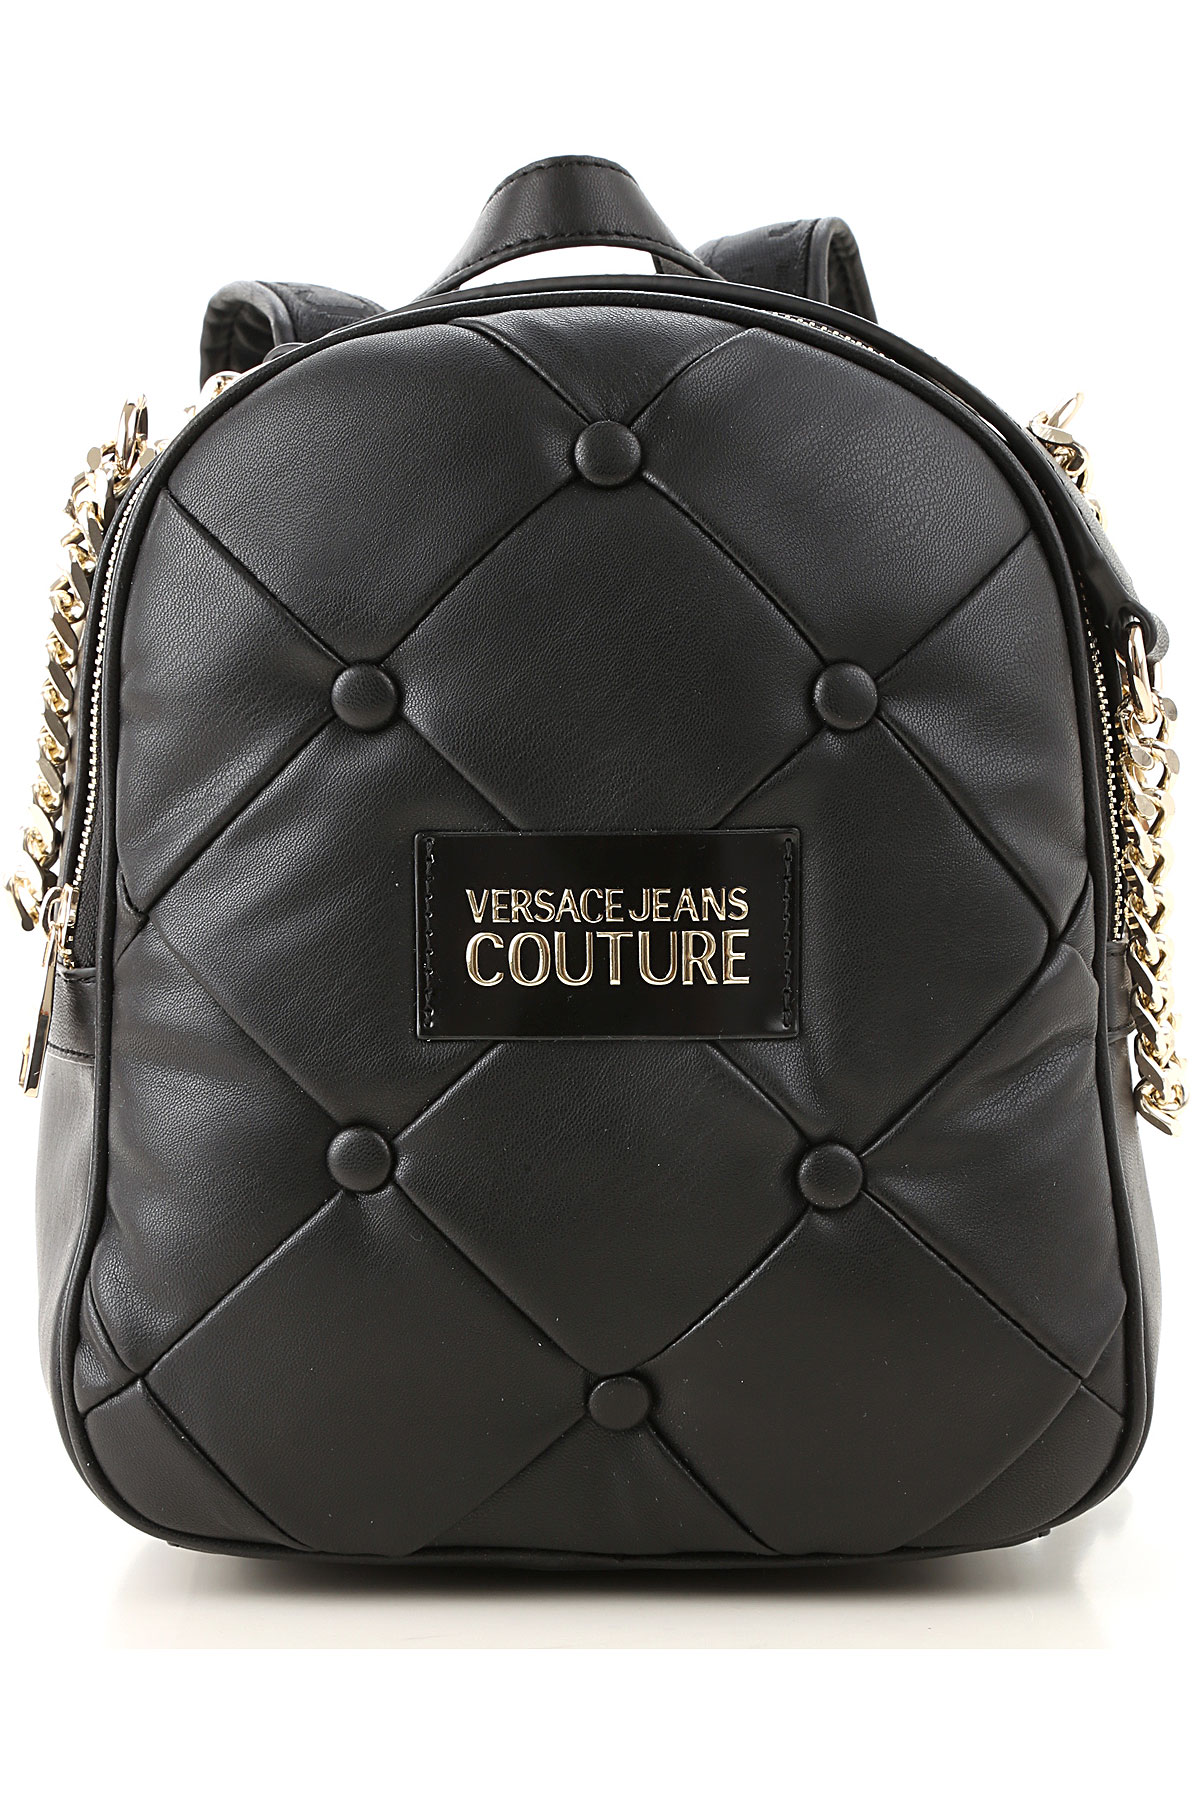 Versace Jeans Couture Backpack for Women On Sale, Black, polyestere, 2019